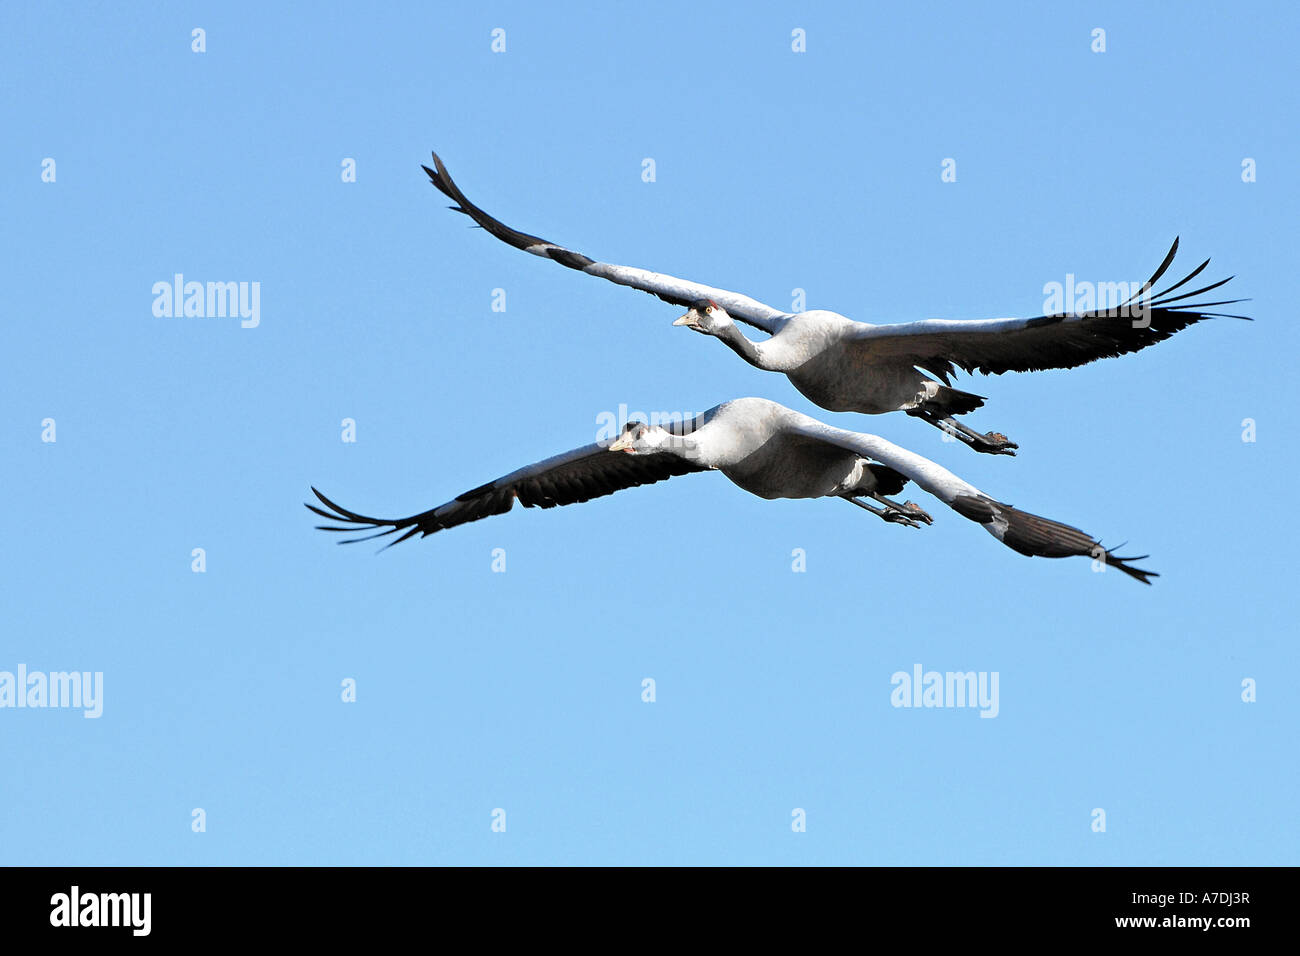 Common Crane Grus grus Graukranich Europa europe Tiere animals Vogel Voegel birds kranich crane Stock Photo